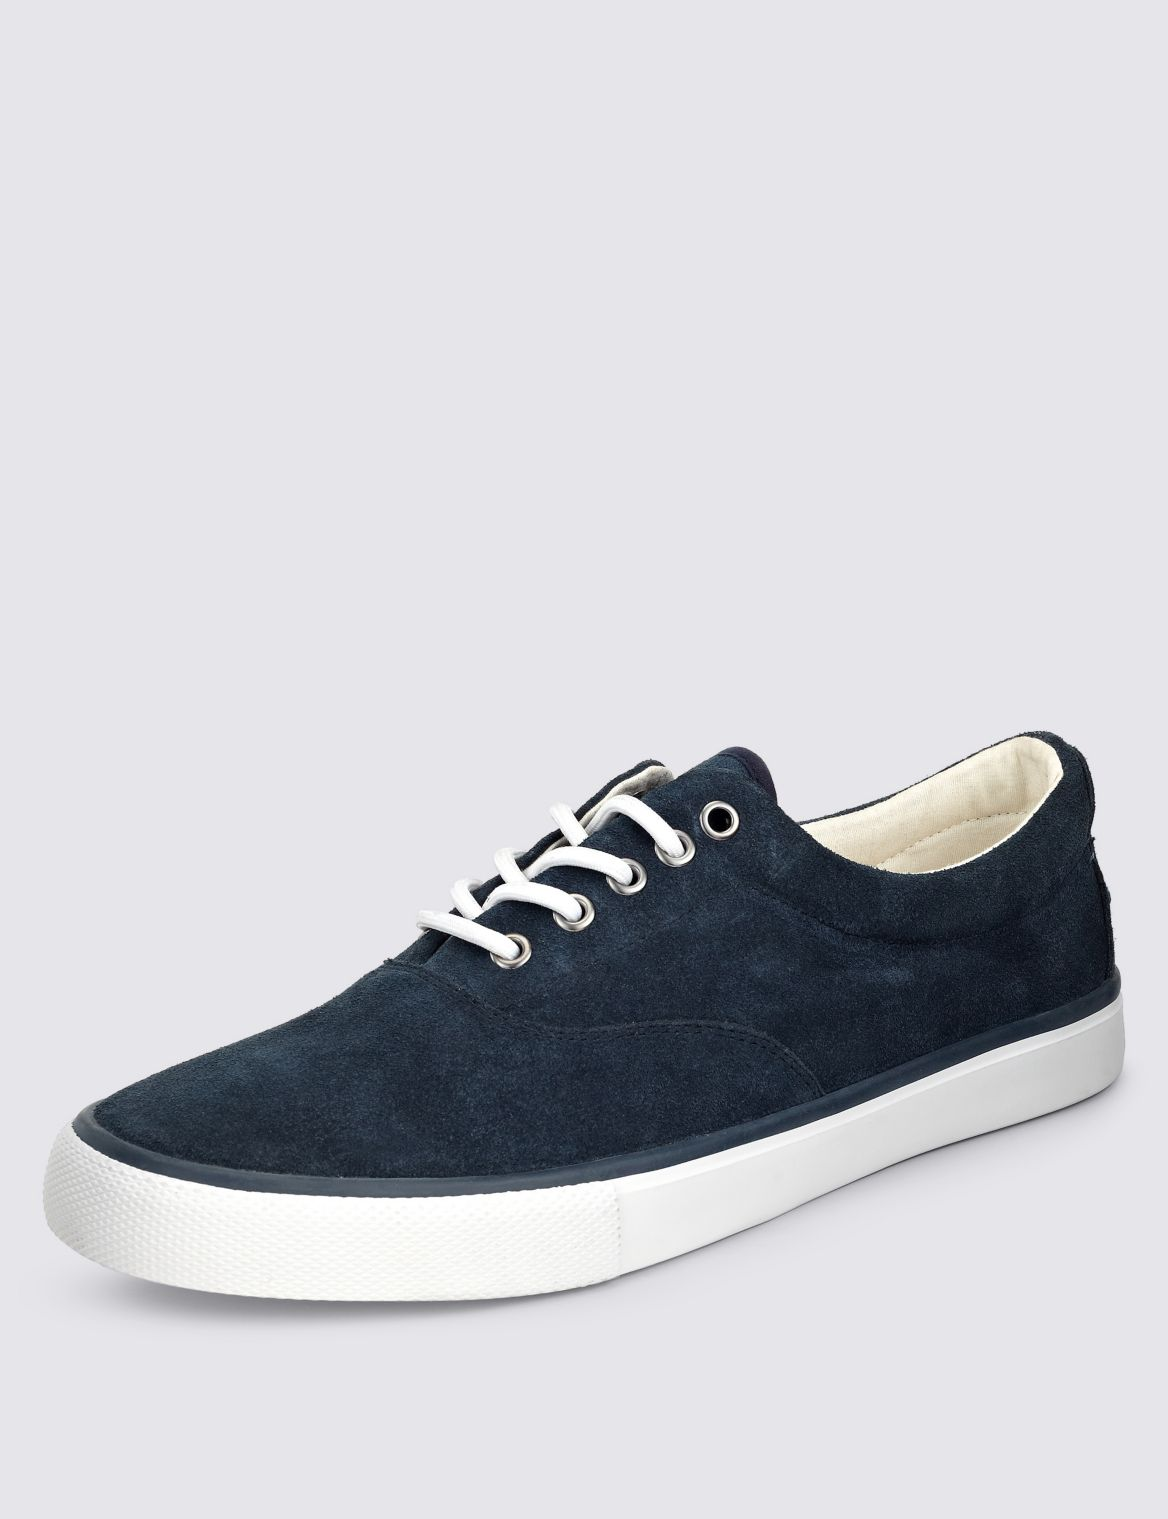 Suede Lace-up Oxford Pump Shoes navy